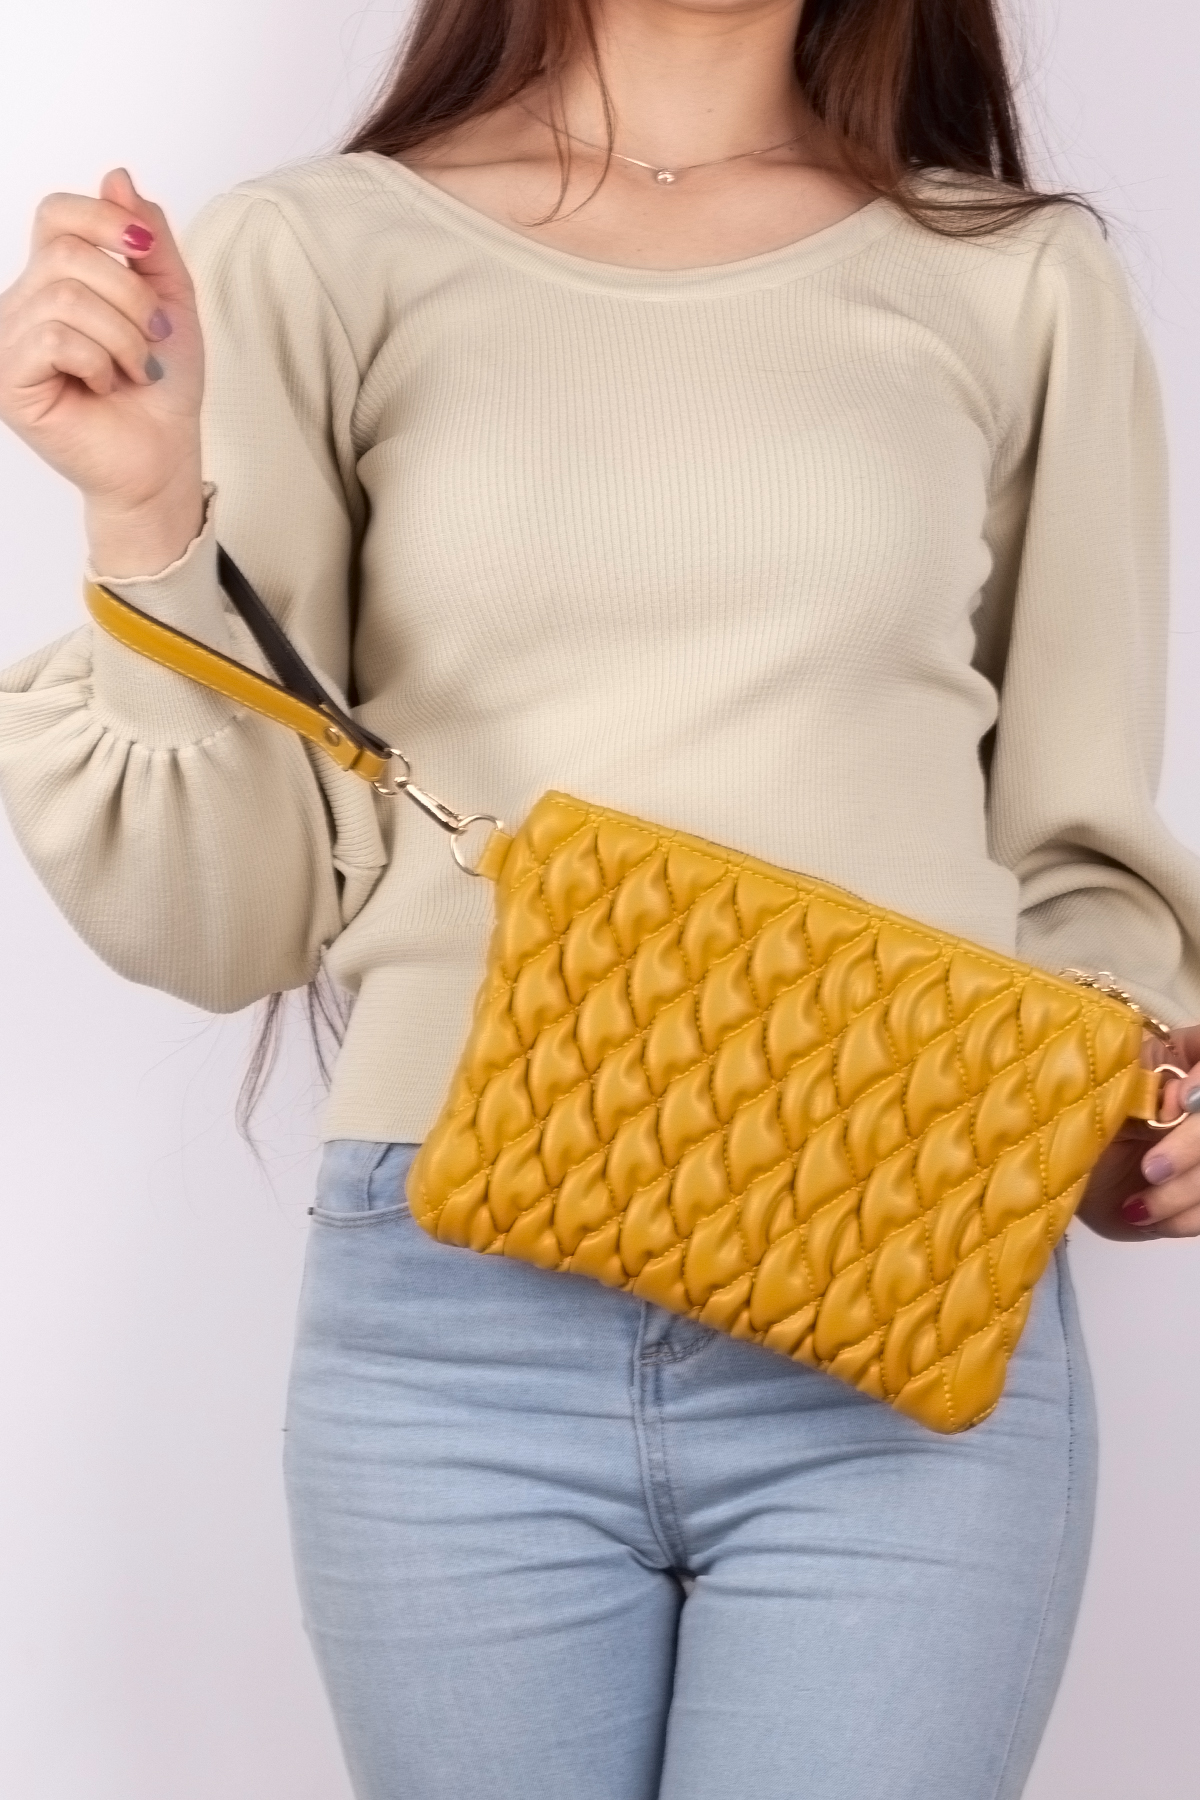 Women's Chain Detail Puff Embroidery Yellow Soft Leather Bag